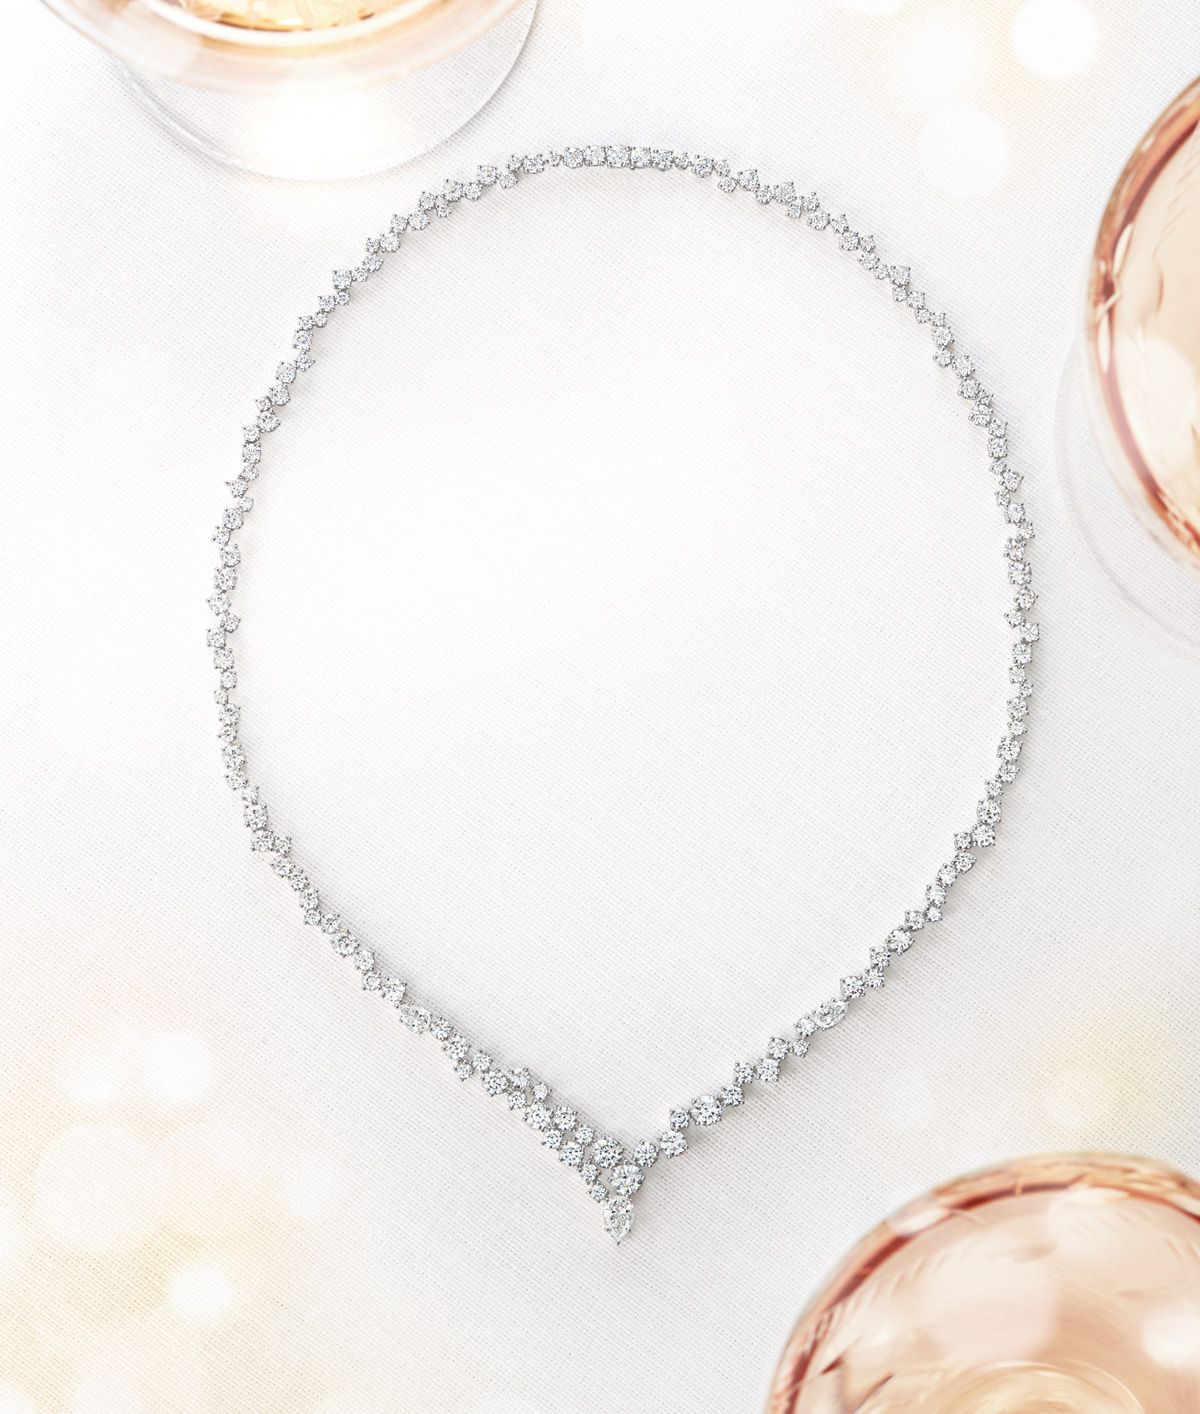 The Sparkling Cluster Collection by Harry Winston